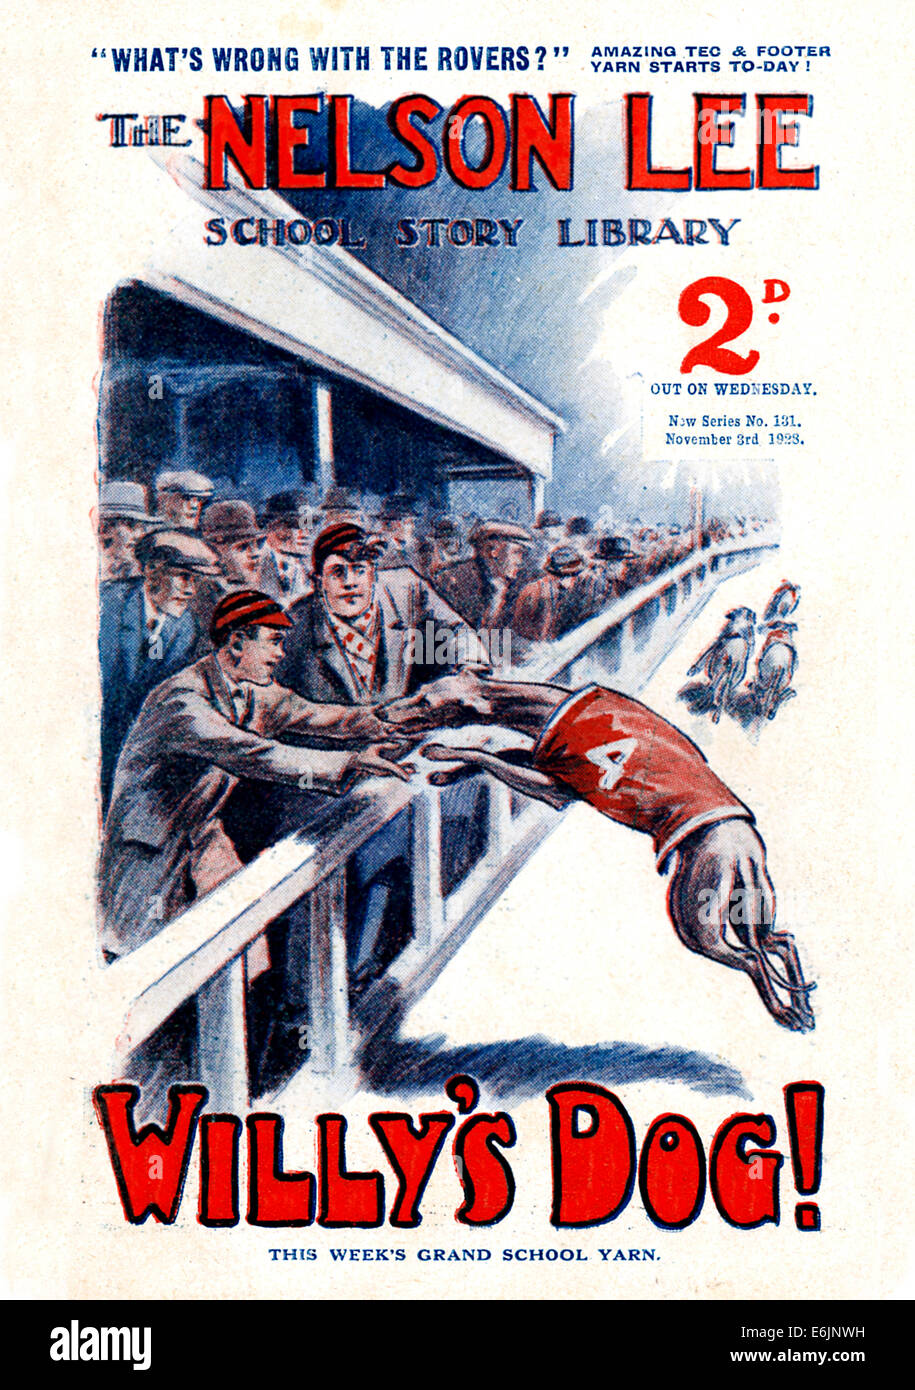 Willys Dog, 1920s comic book cover featuring a greyhound racing story - Stock Image